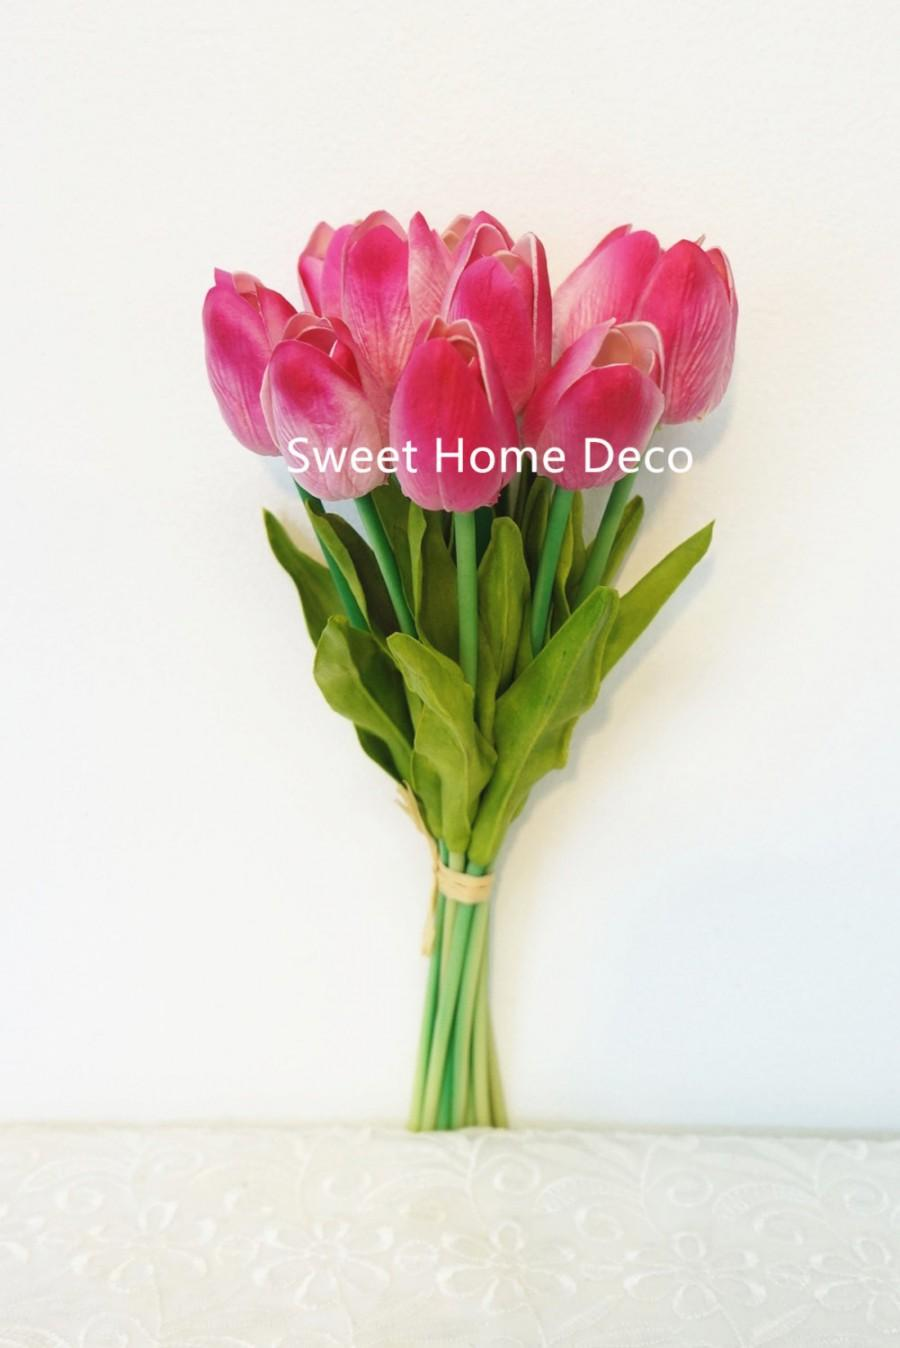 Hochzeit - JennysFlowerShop Latex Real Touch 13'' Artificial Tulip 10 Stems Flower Bouquet for Home/Wedding Hot Pink